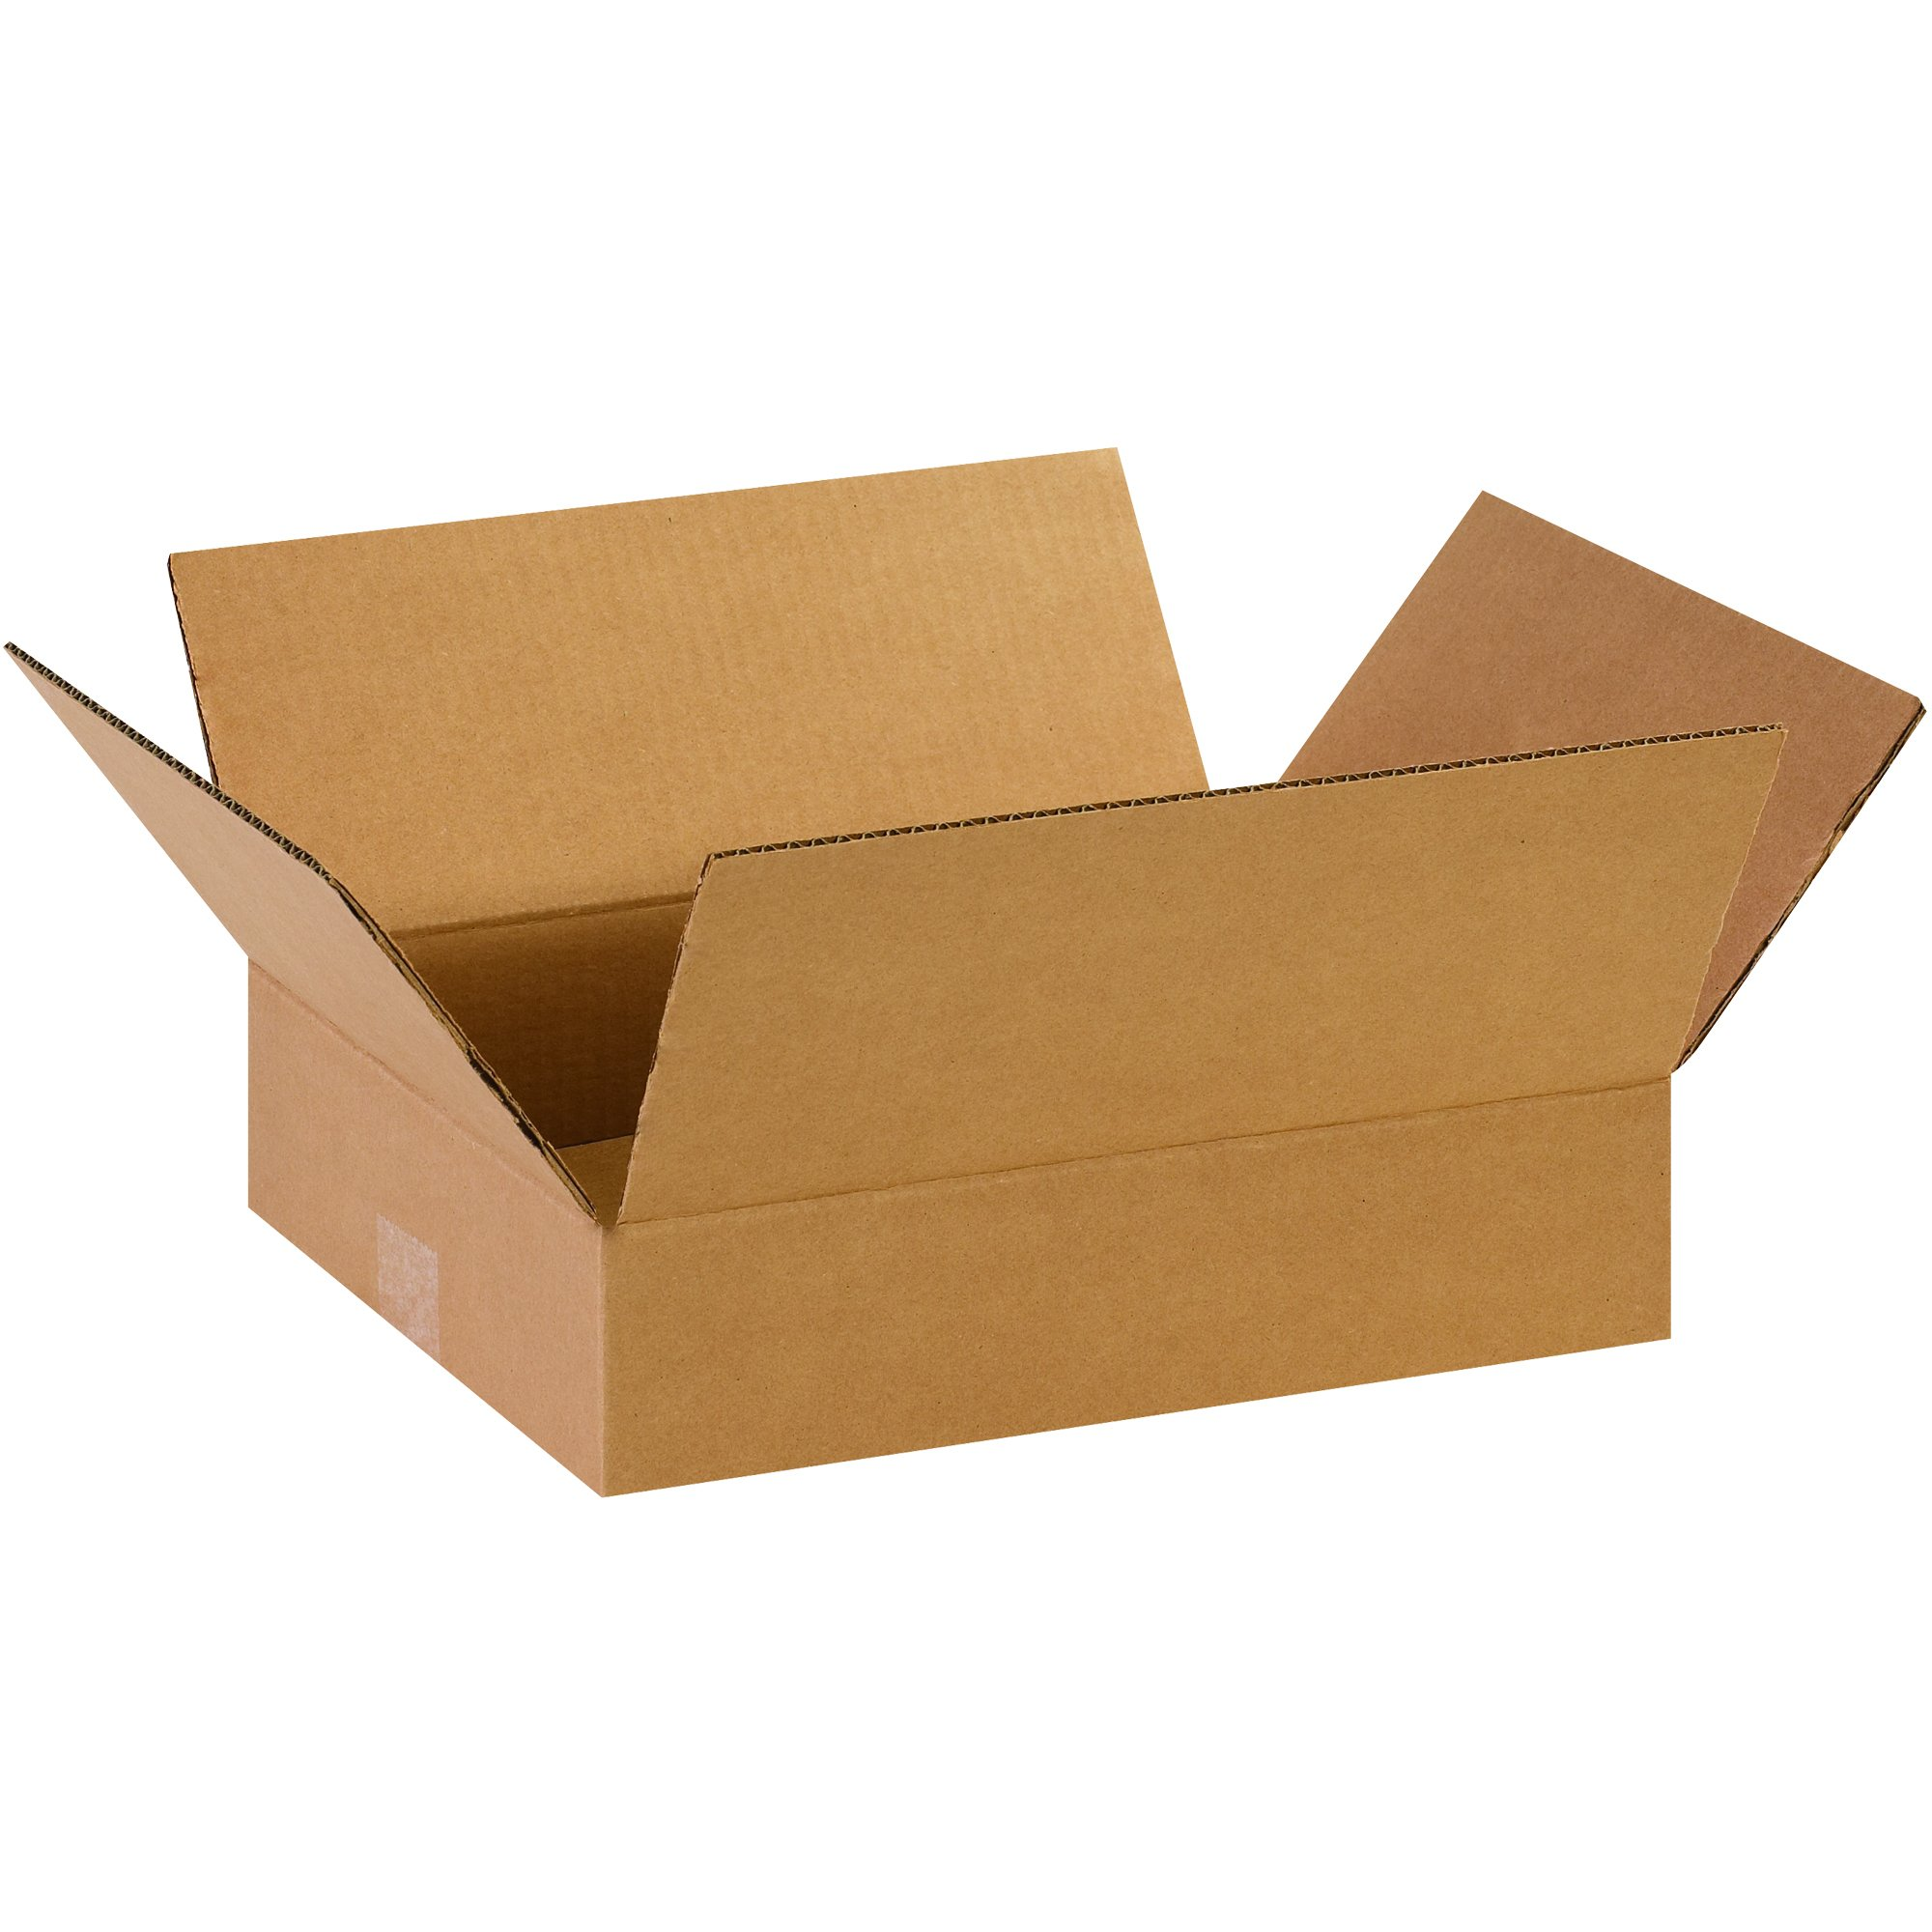 Artwork Pack of 20 Boxes Fast BF24166 Corrugated Cardboard Flat Shipping Boxes Picture Frames Kraft and Mirrors Books 24 x 16 x 6 for Clothing